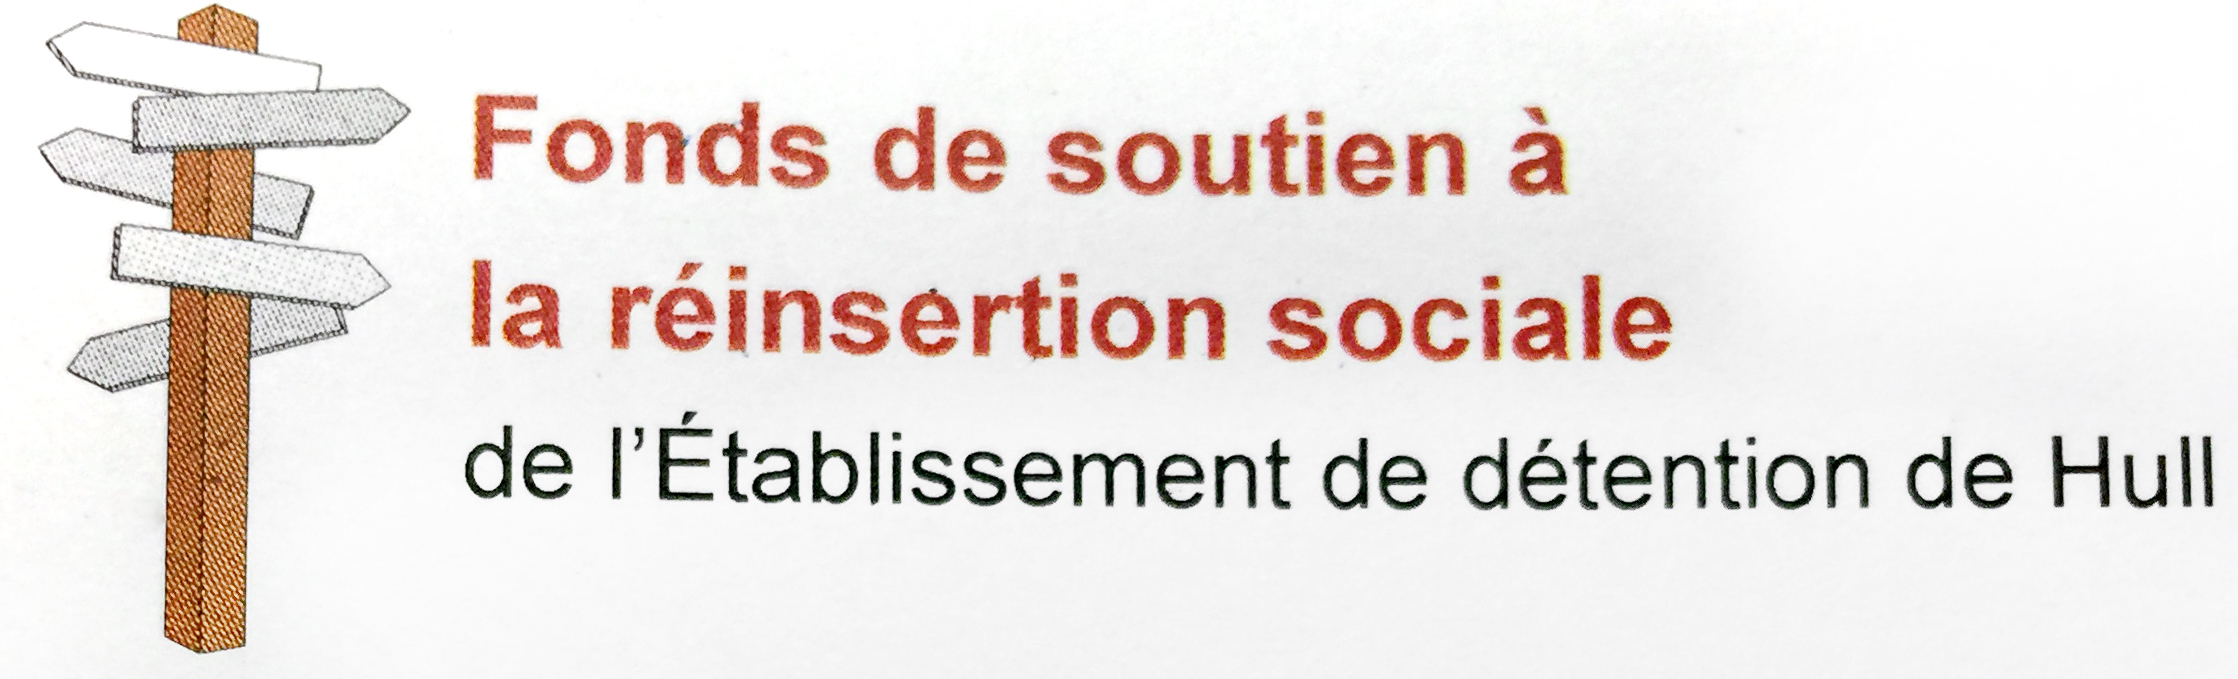 Fonds de soutien à la réinsertion sociale de l'Établissement de détention de Hull